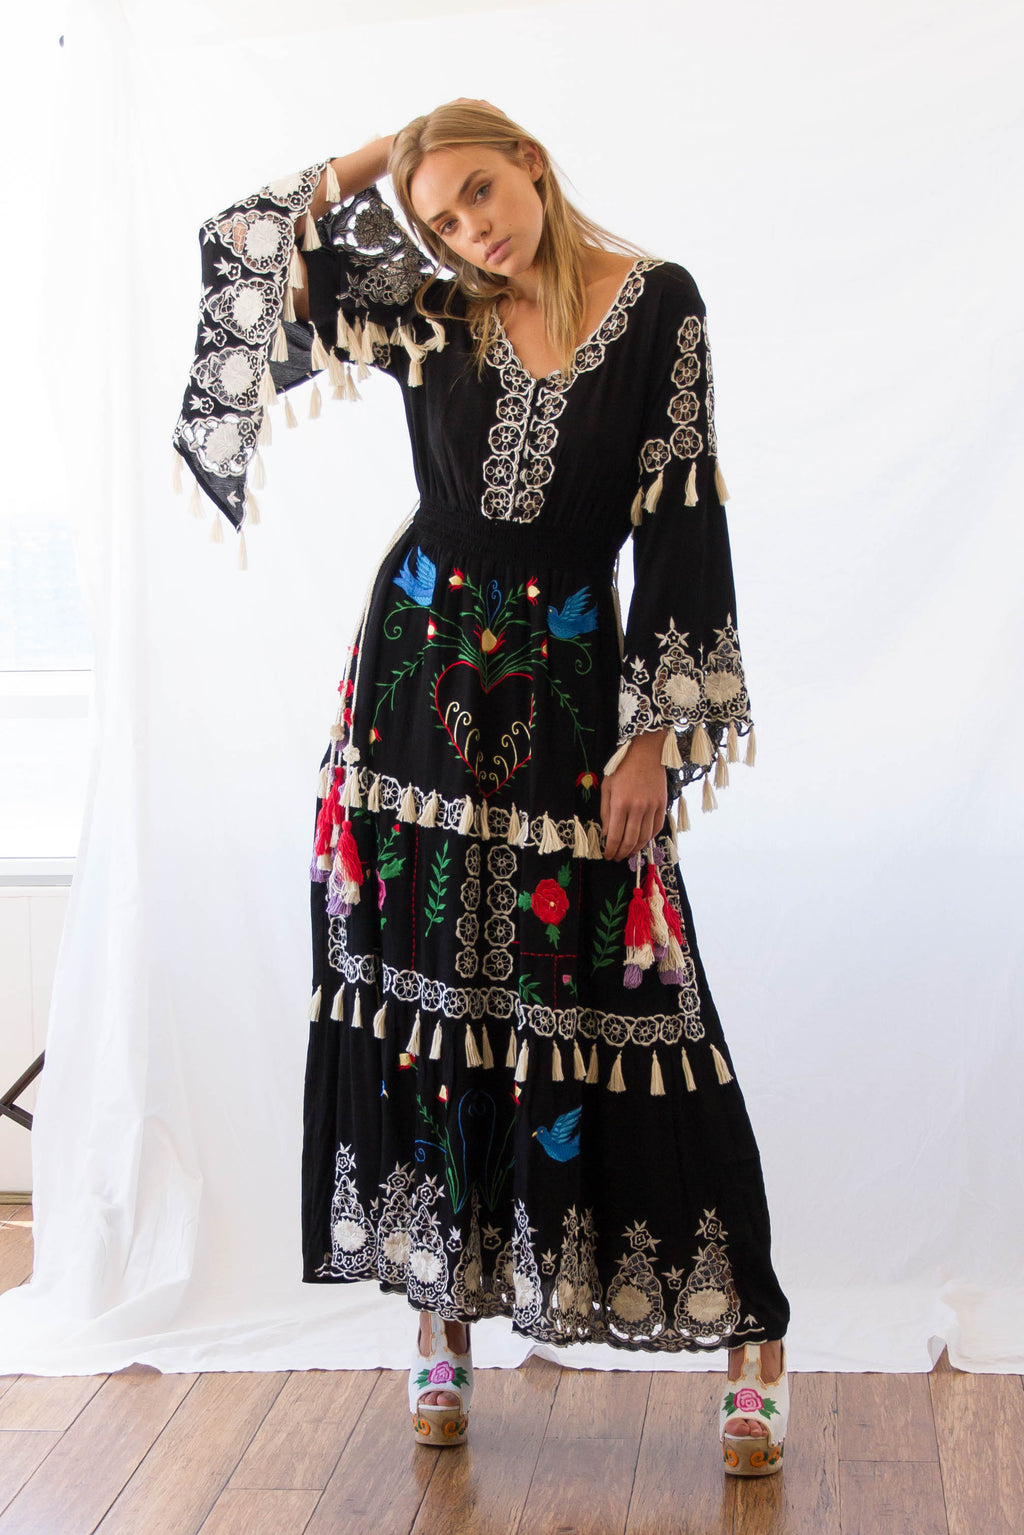 FILLYBOO - 'LITTLE BEAR' - HAND EMBROIDERED MAXI DRESS - BLACK/MULTI